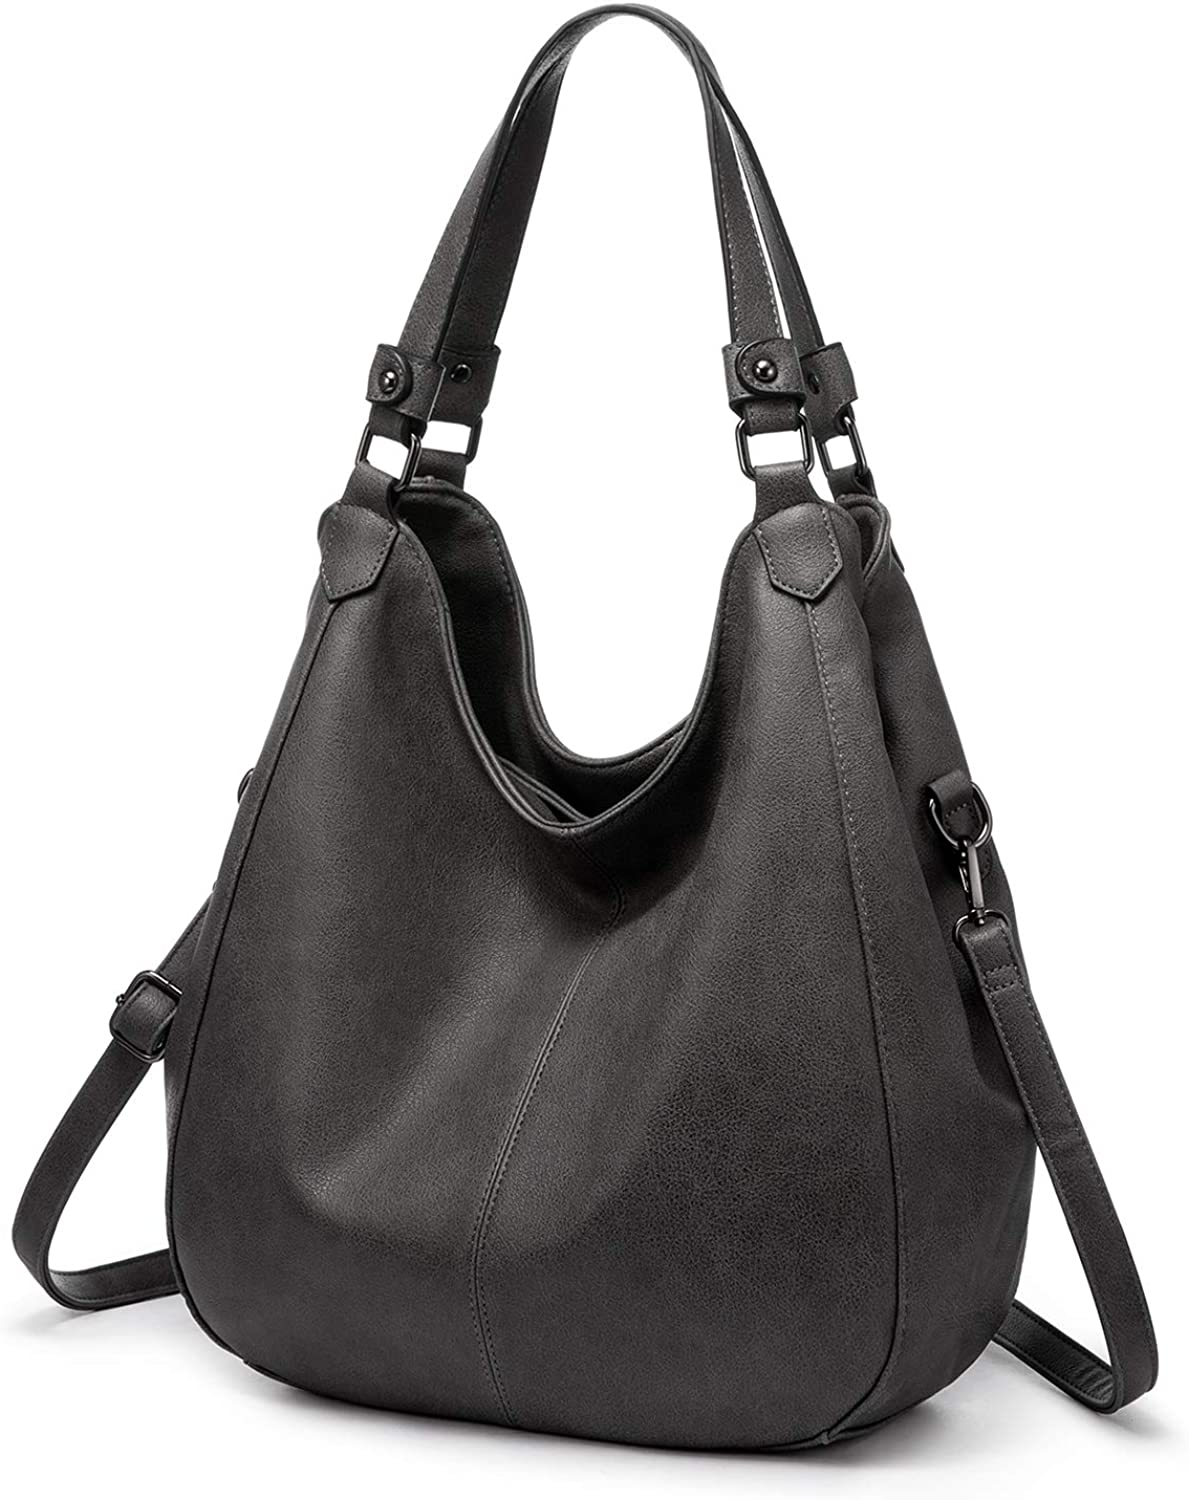 Hobo Bags for Women Faux Leather Shoulder Bag Large Crossbody Bags with 2 Compartments